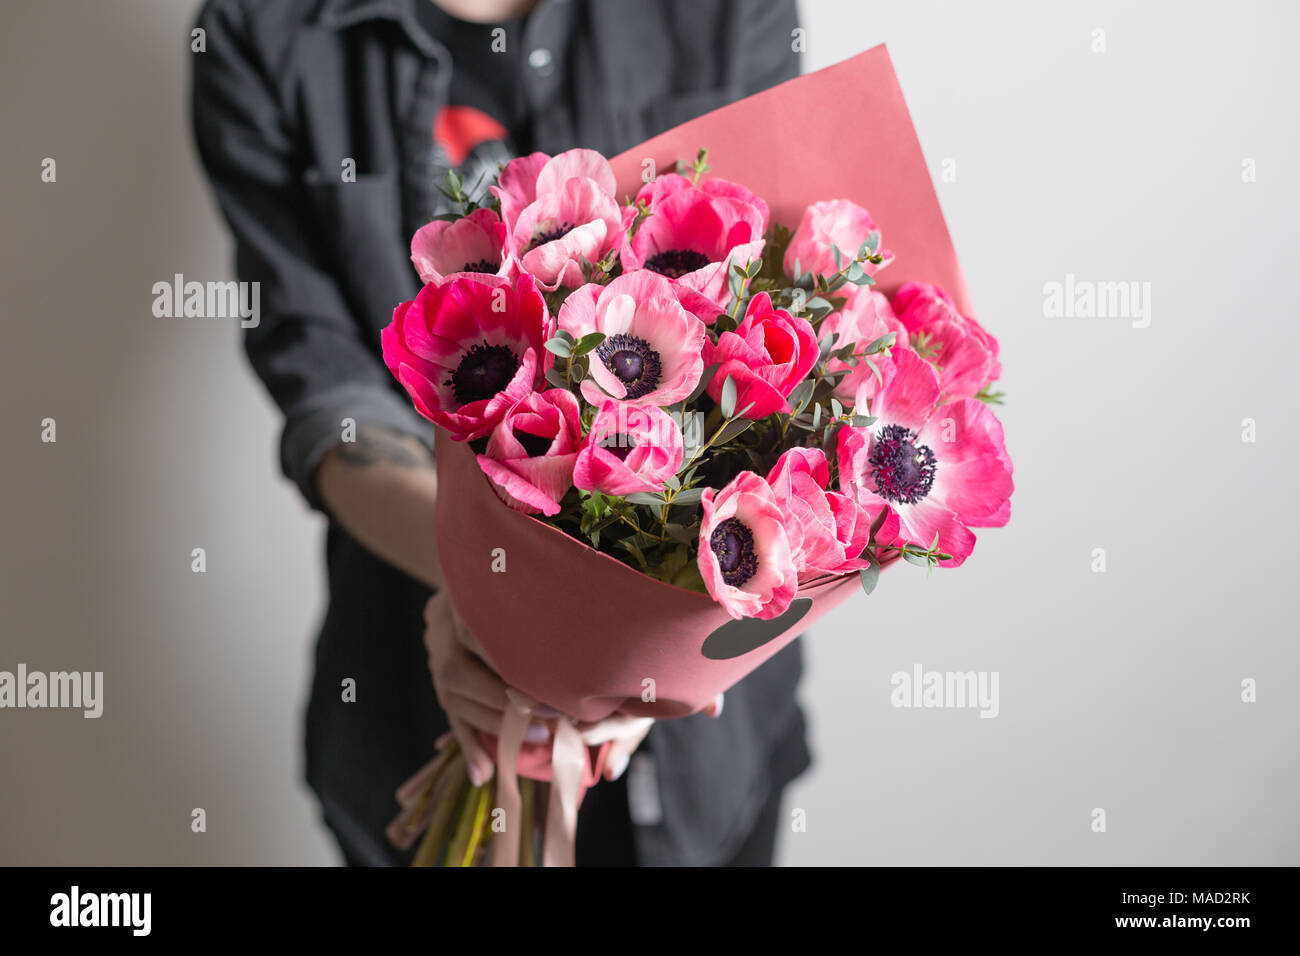 Cute Flowers Beautiful Bouquet Of Pink Anemones In Woman Hand The